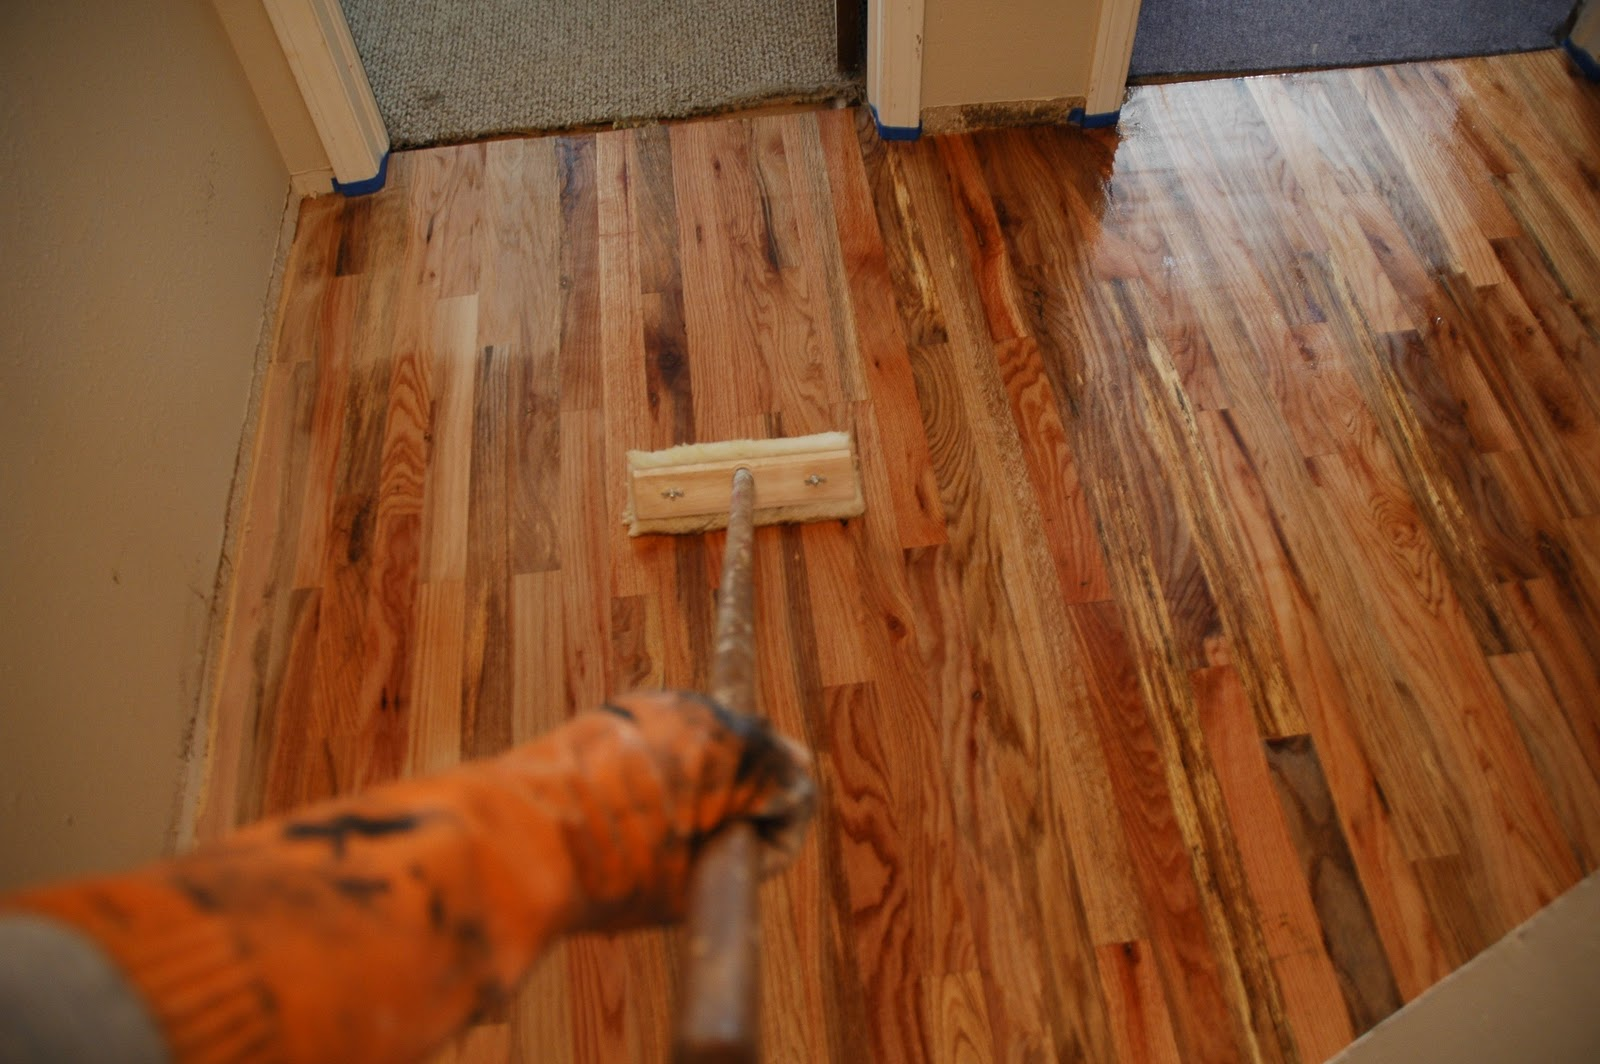 Applying Polyurethane To Hardwood Floors dura seal water based polyurethane floor finish application youtube Remodelaholic How To Finish Solid Wood Flooring Step By Step